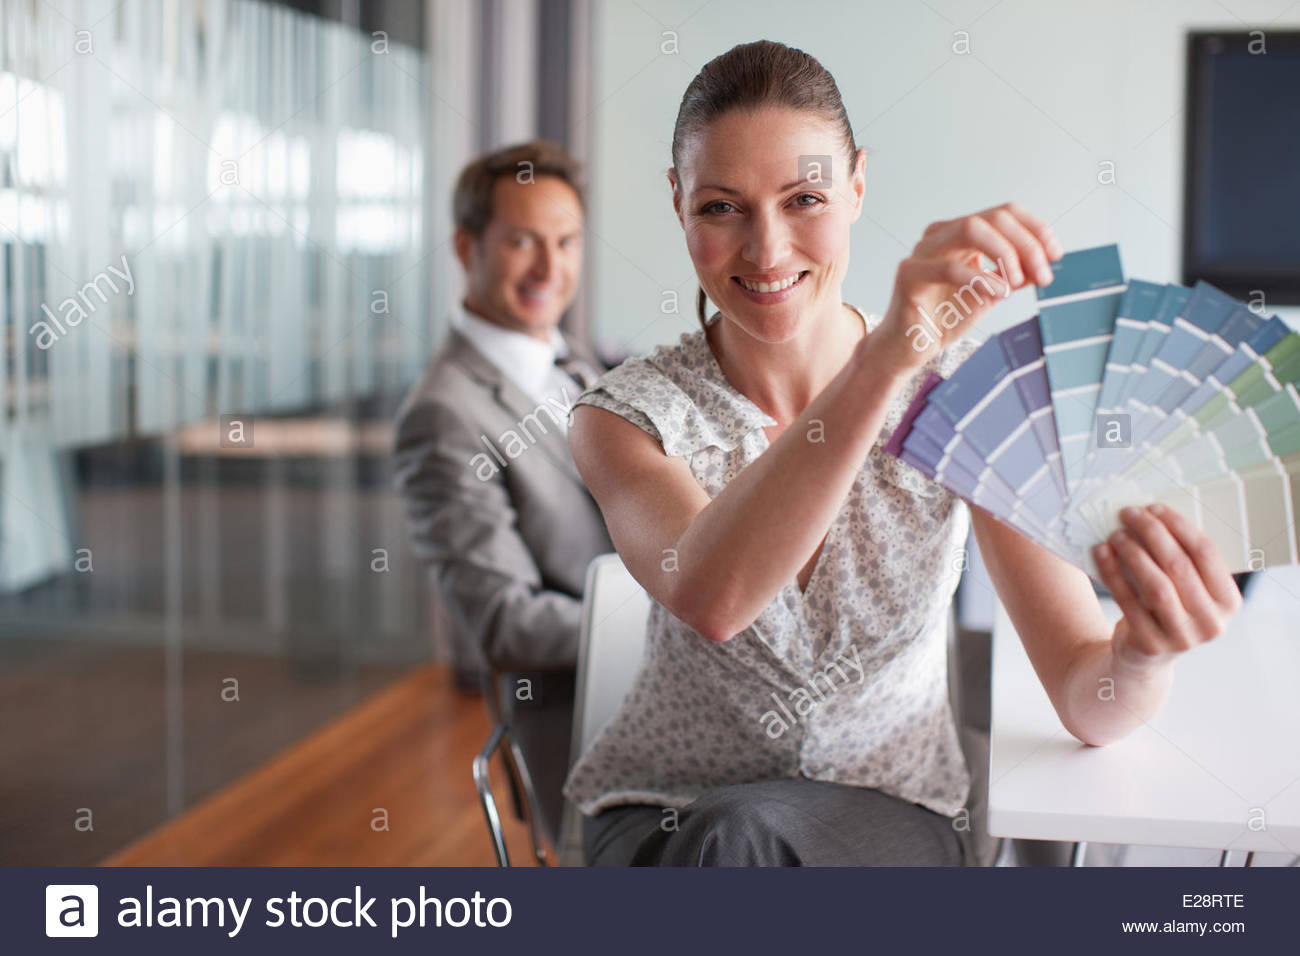 Businesswoman holding color swatches in conference room - Stock Image